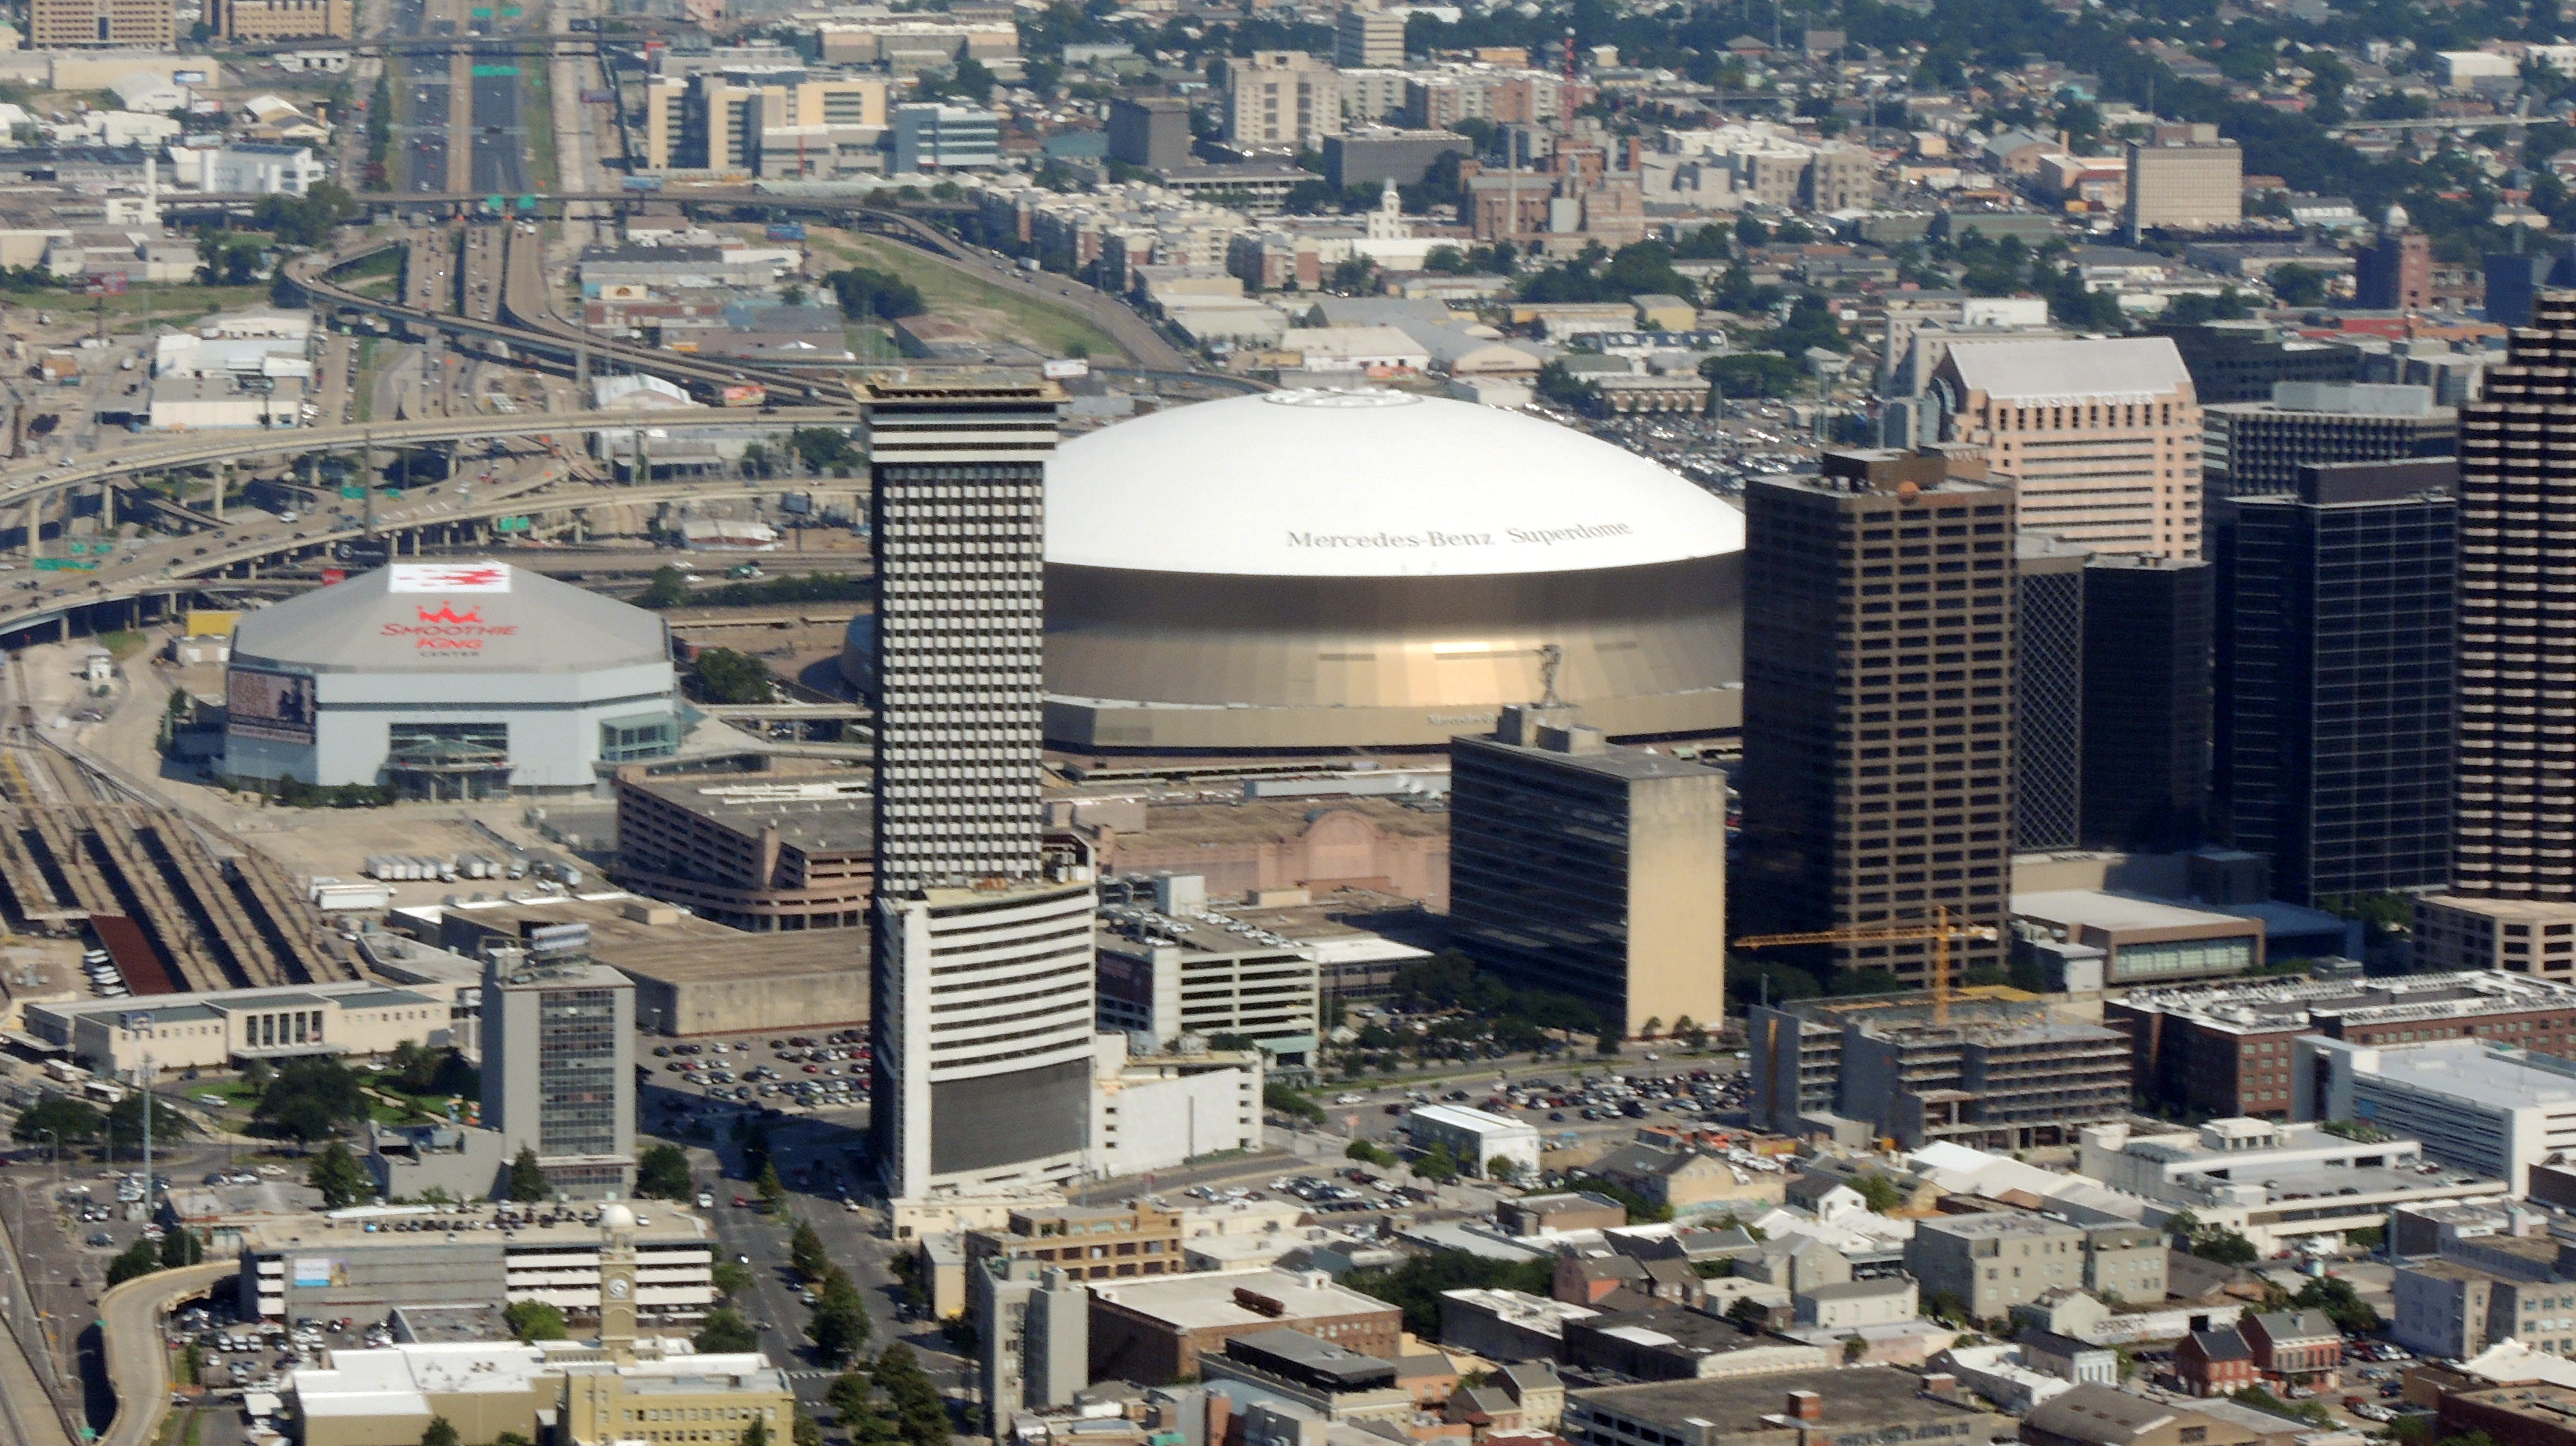 025     Day 2 New Orleans Superdome